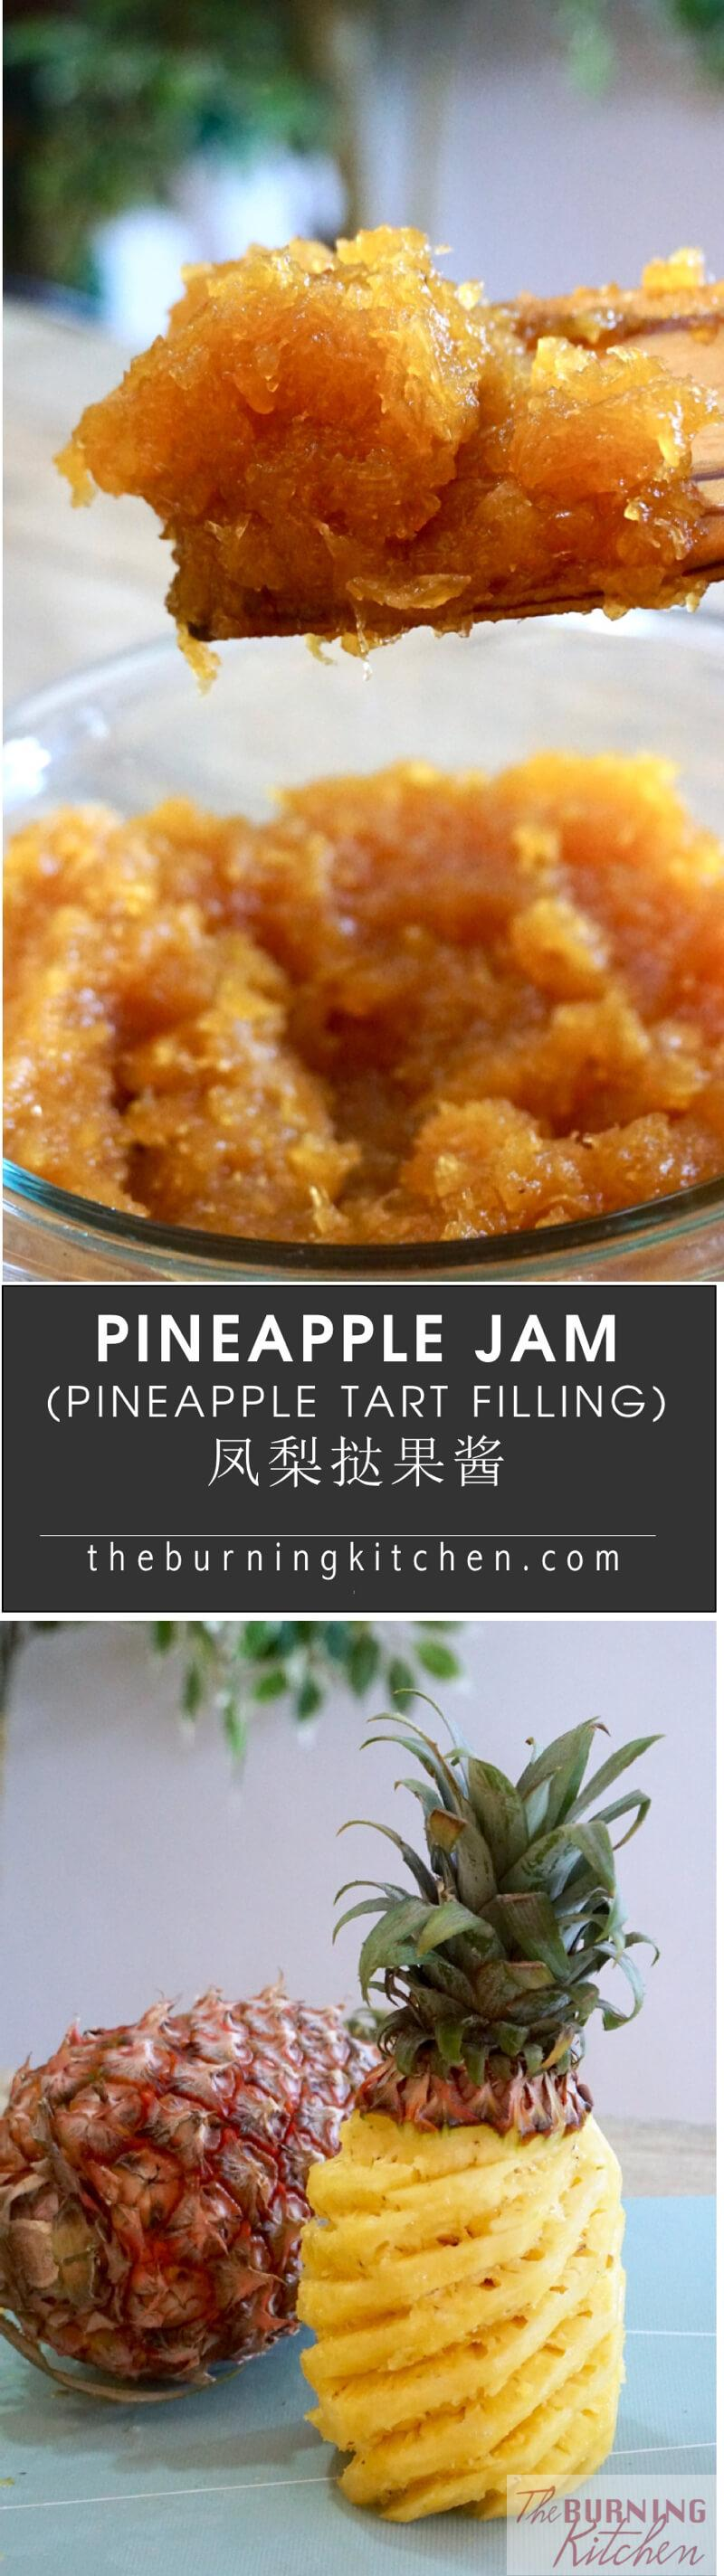 Nothing beats homemadeSpiced Pineapple Jam (Pineapple Tart Filling)! If you don't like the jam in store- bought pineapple tarts, why not make your own where you can control your preferred texture and sweetness? See this recipe to find out more!